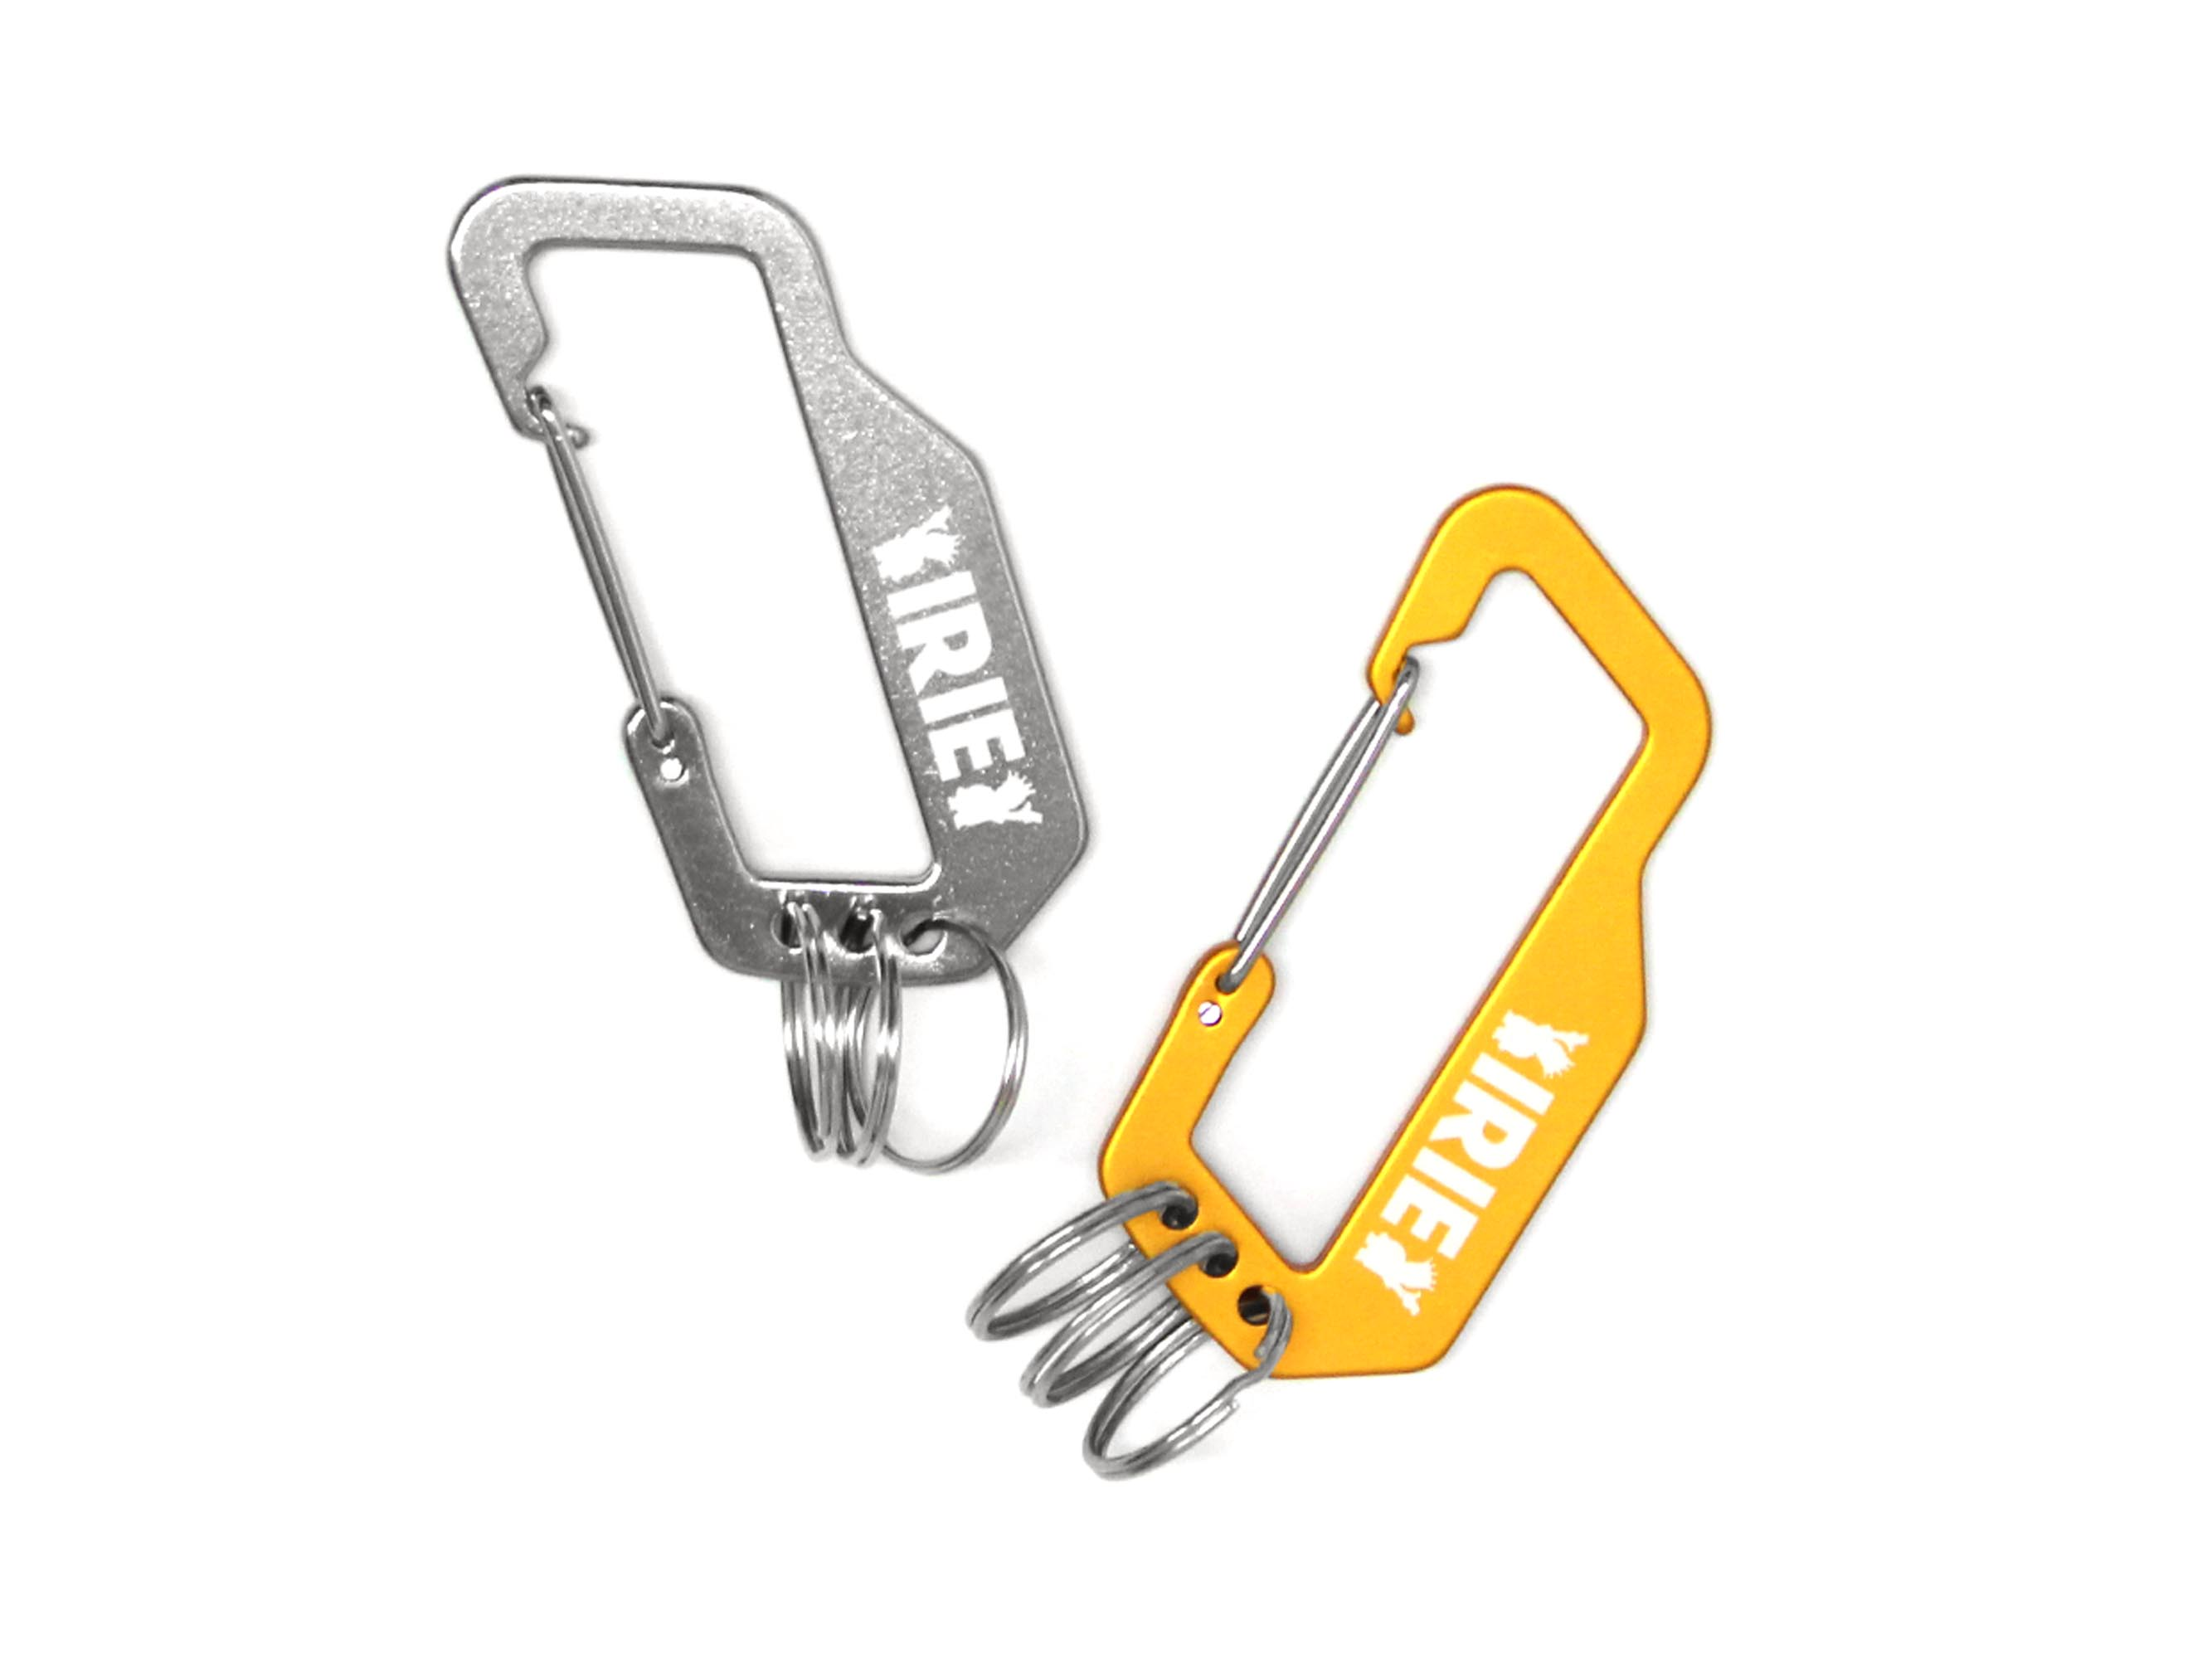 IRIE RING CARABINER - IRIE by irielife